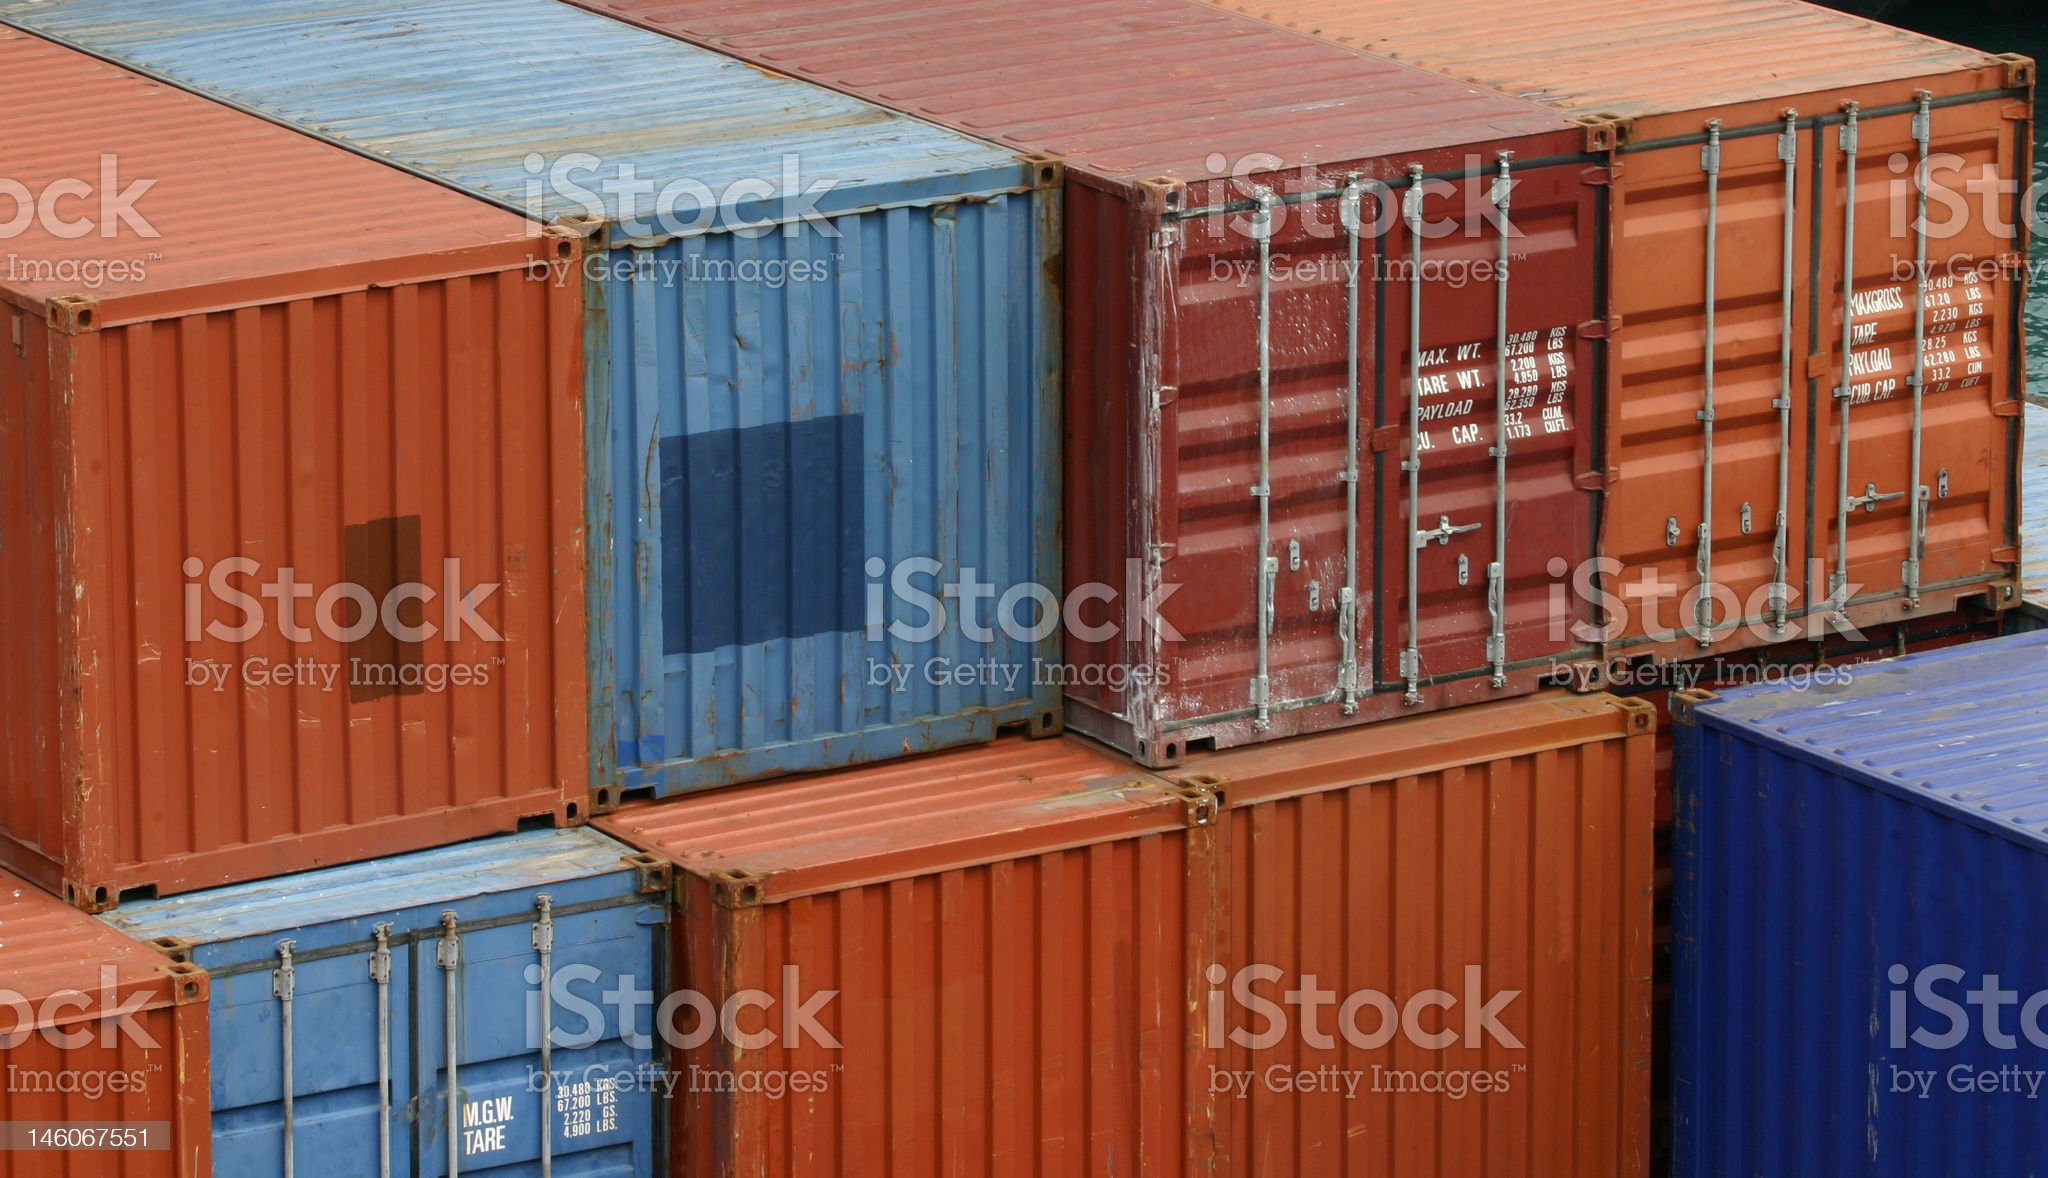 Shipping containers royalty-free stock photo